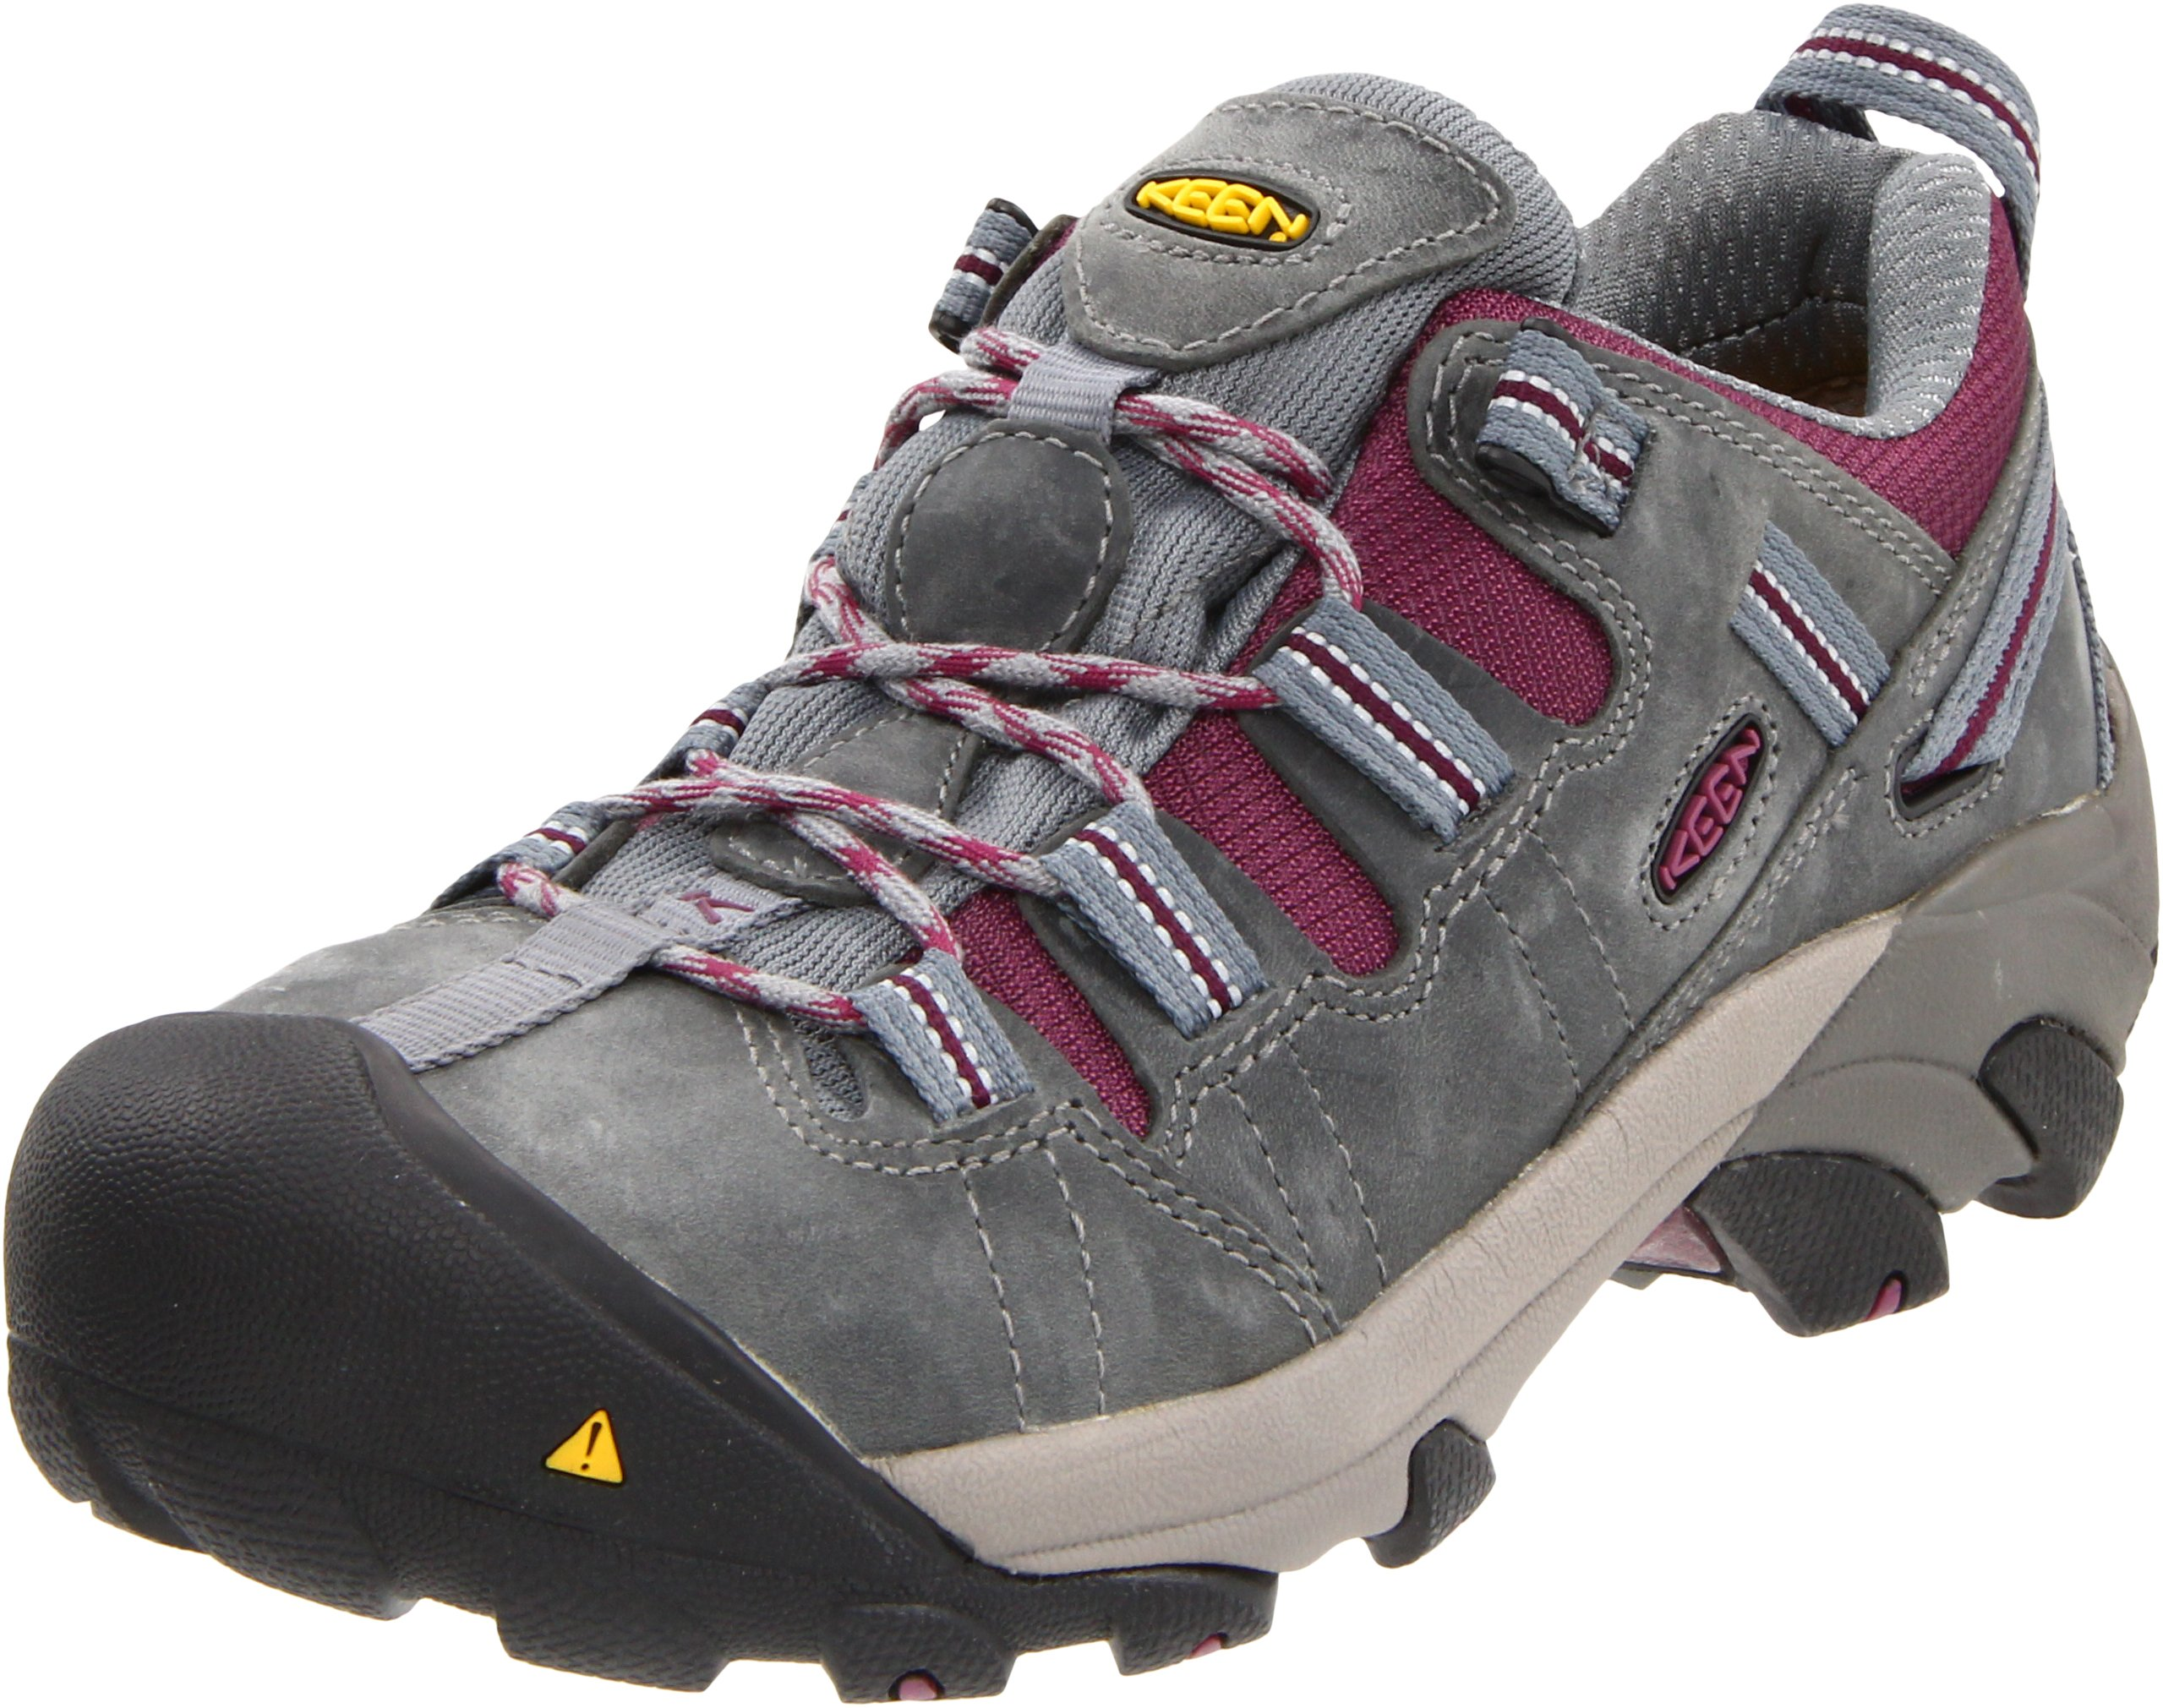 KEEN Utility Women's Detroit Low Steel Toe Work Shoe,Monument/Amaranth,9 W US